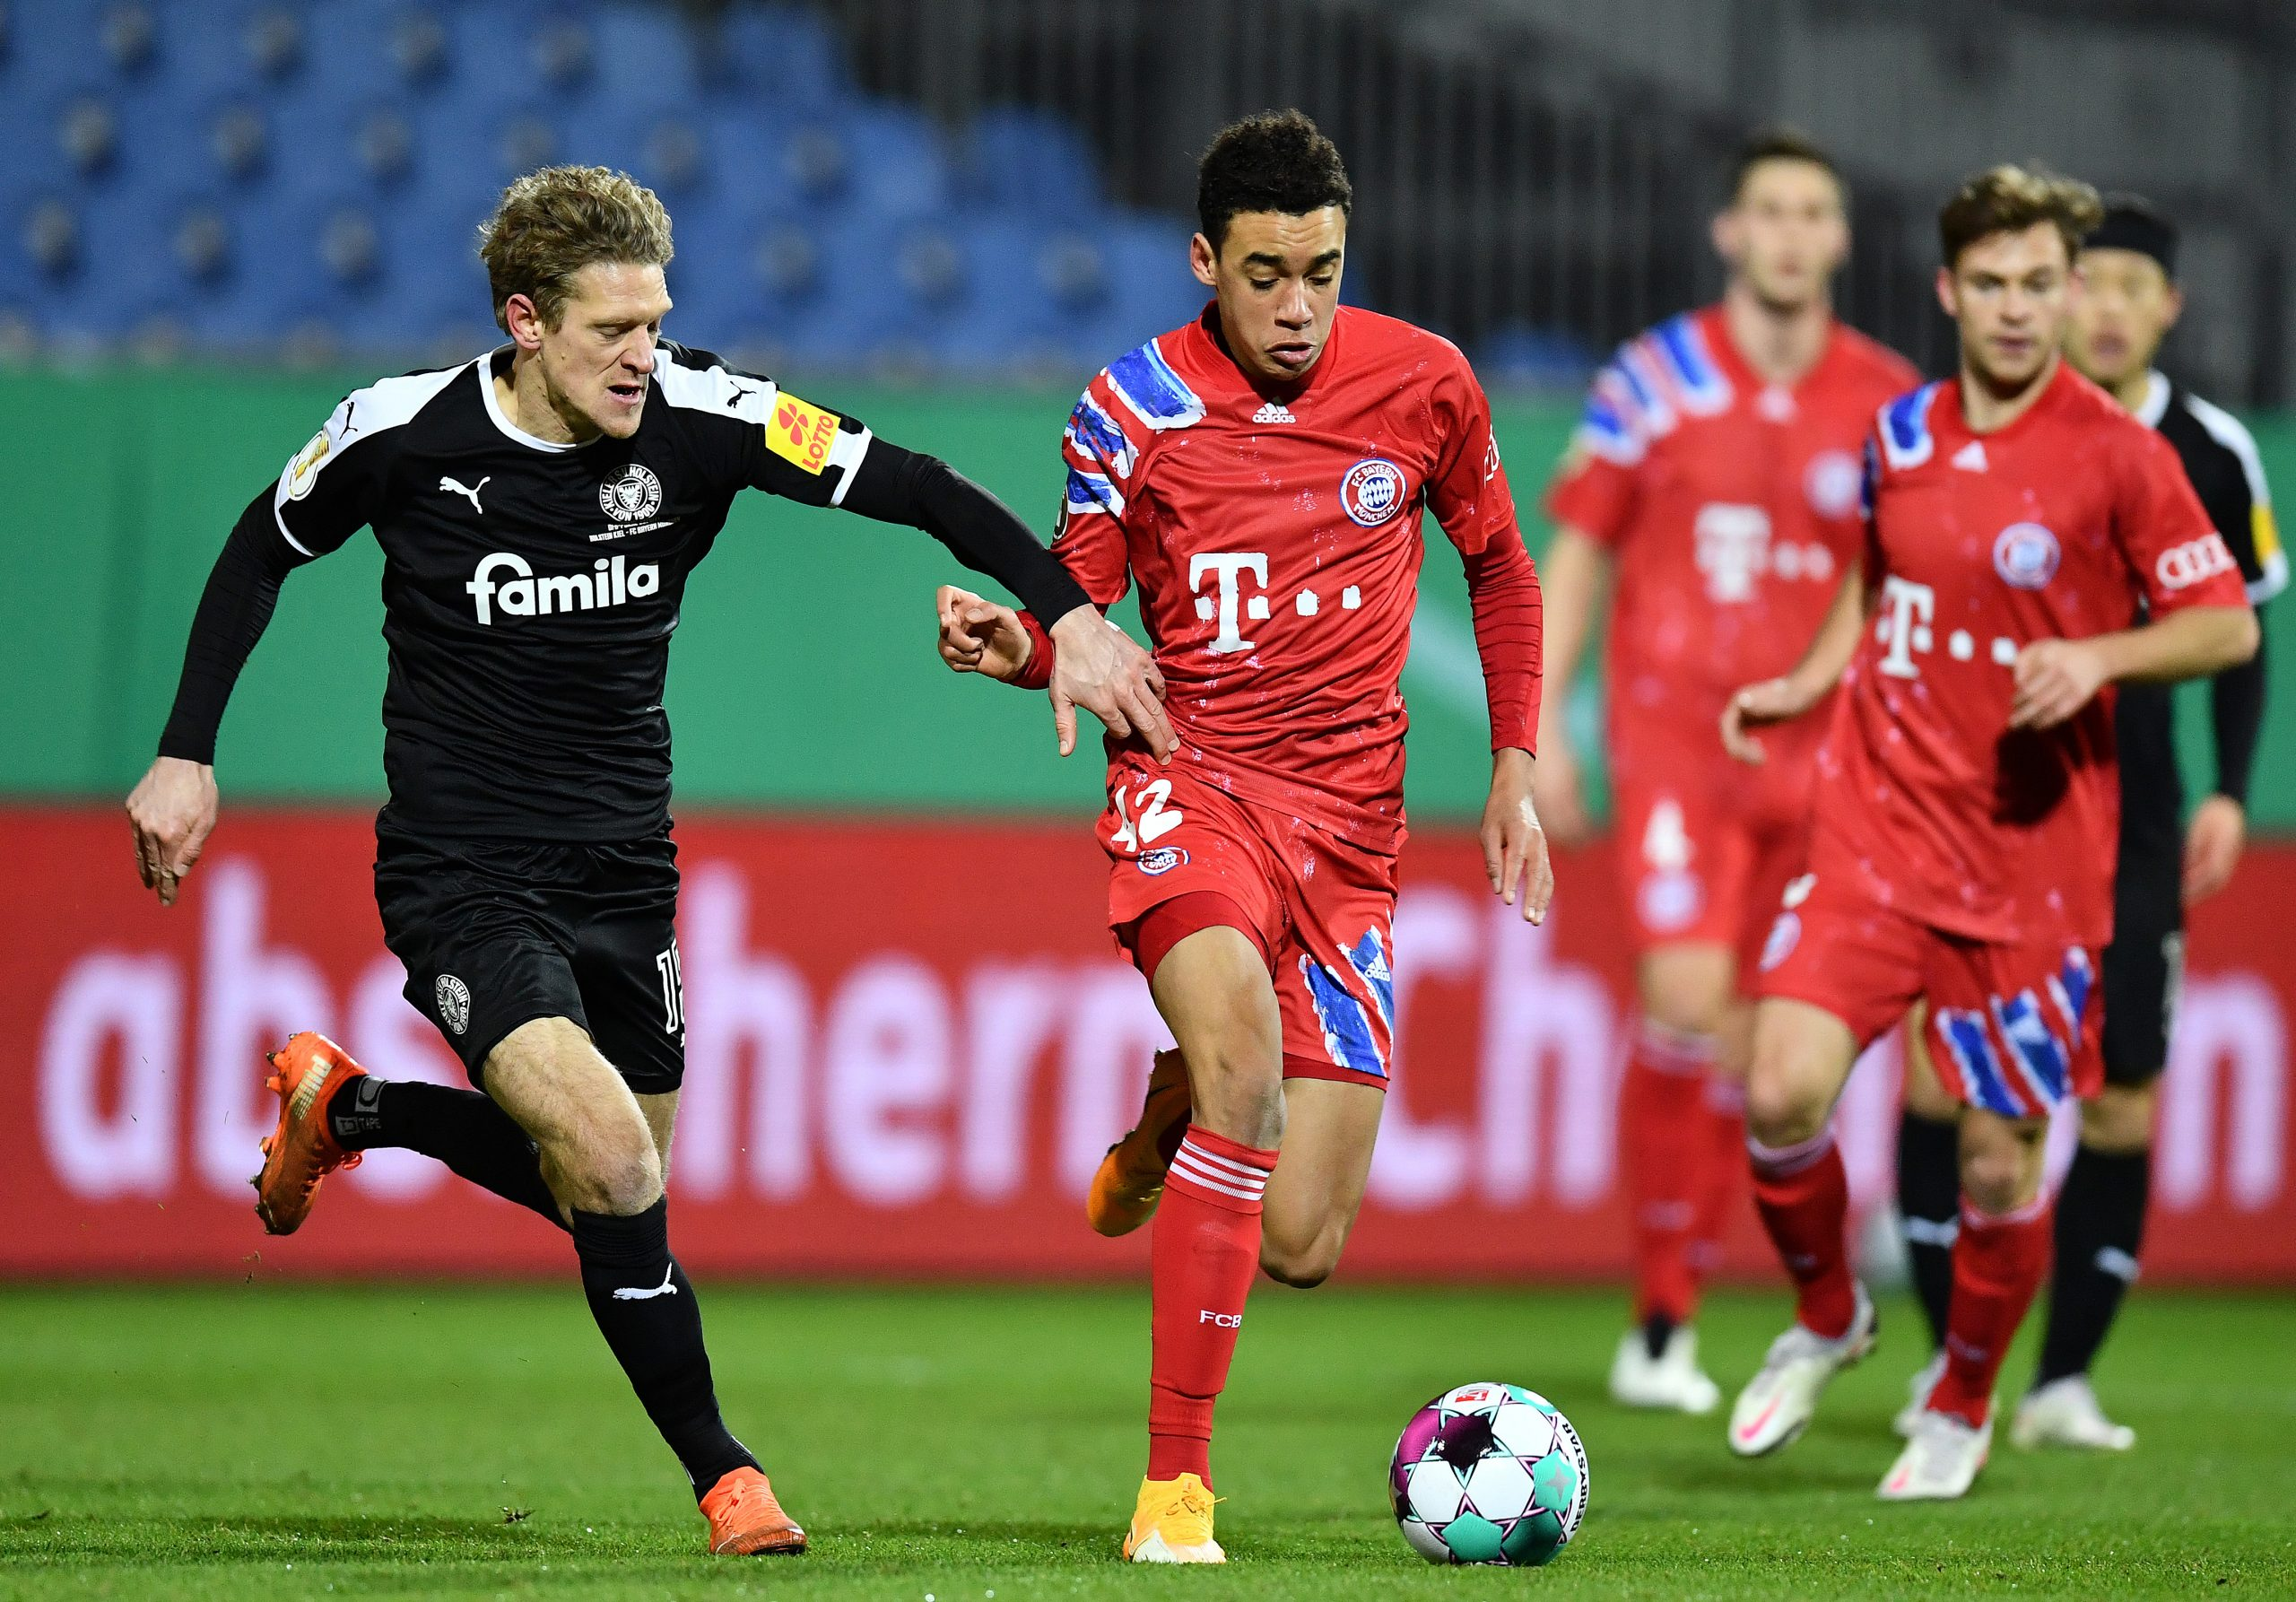 Jamal Musiala: Transfer Rumours Add To Bayern Munich's Problems